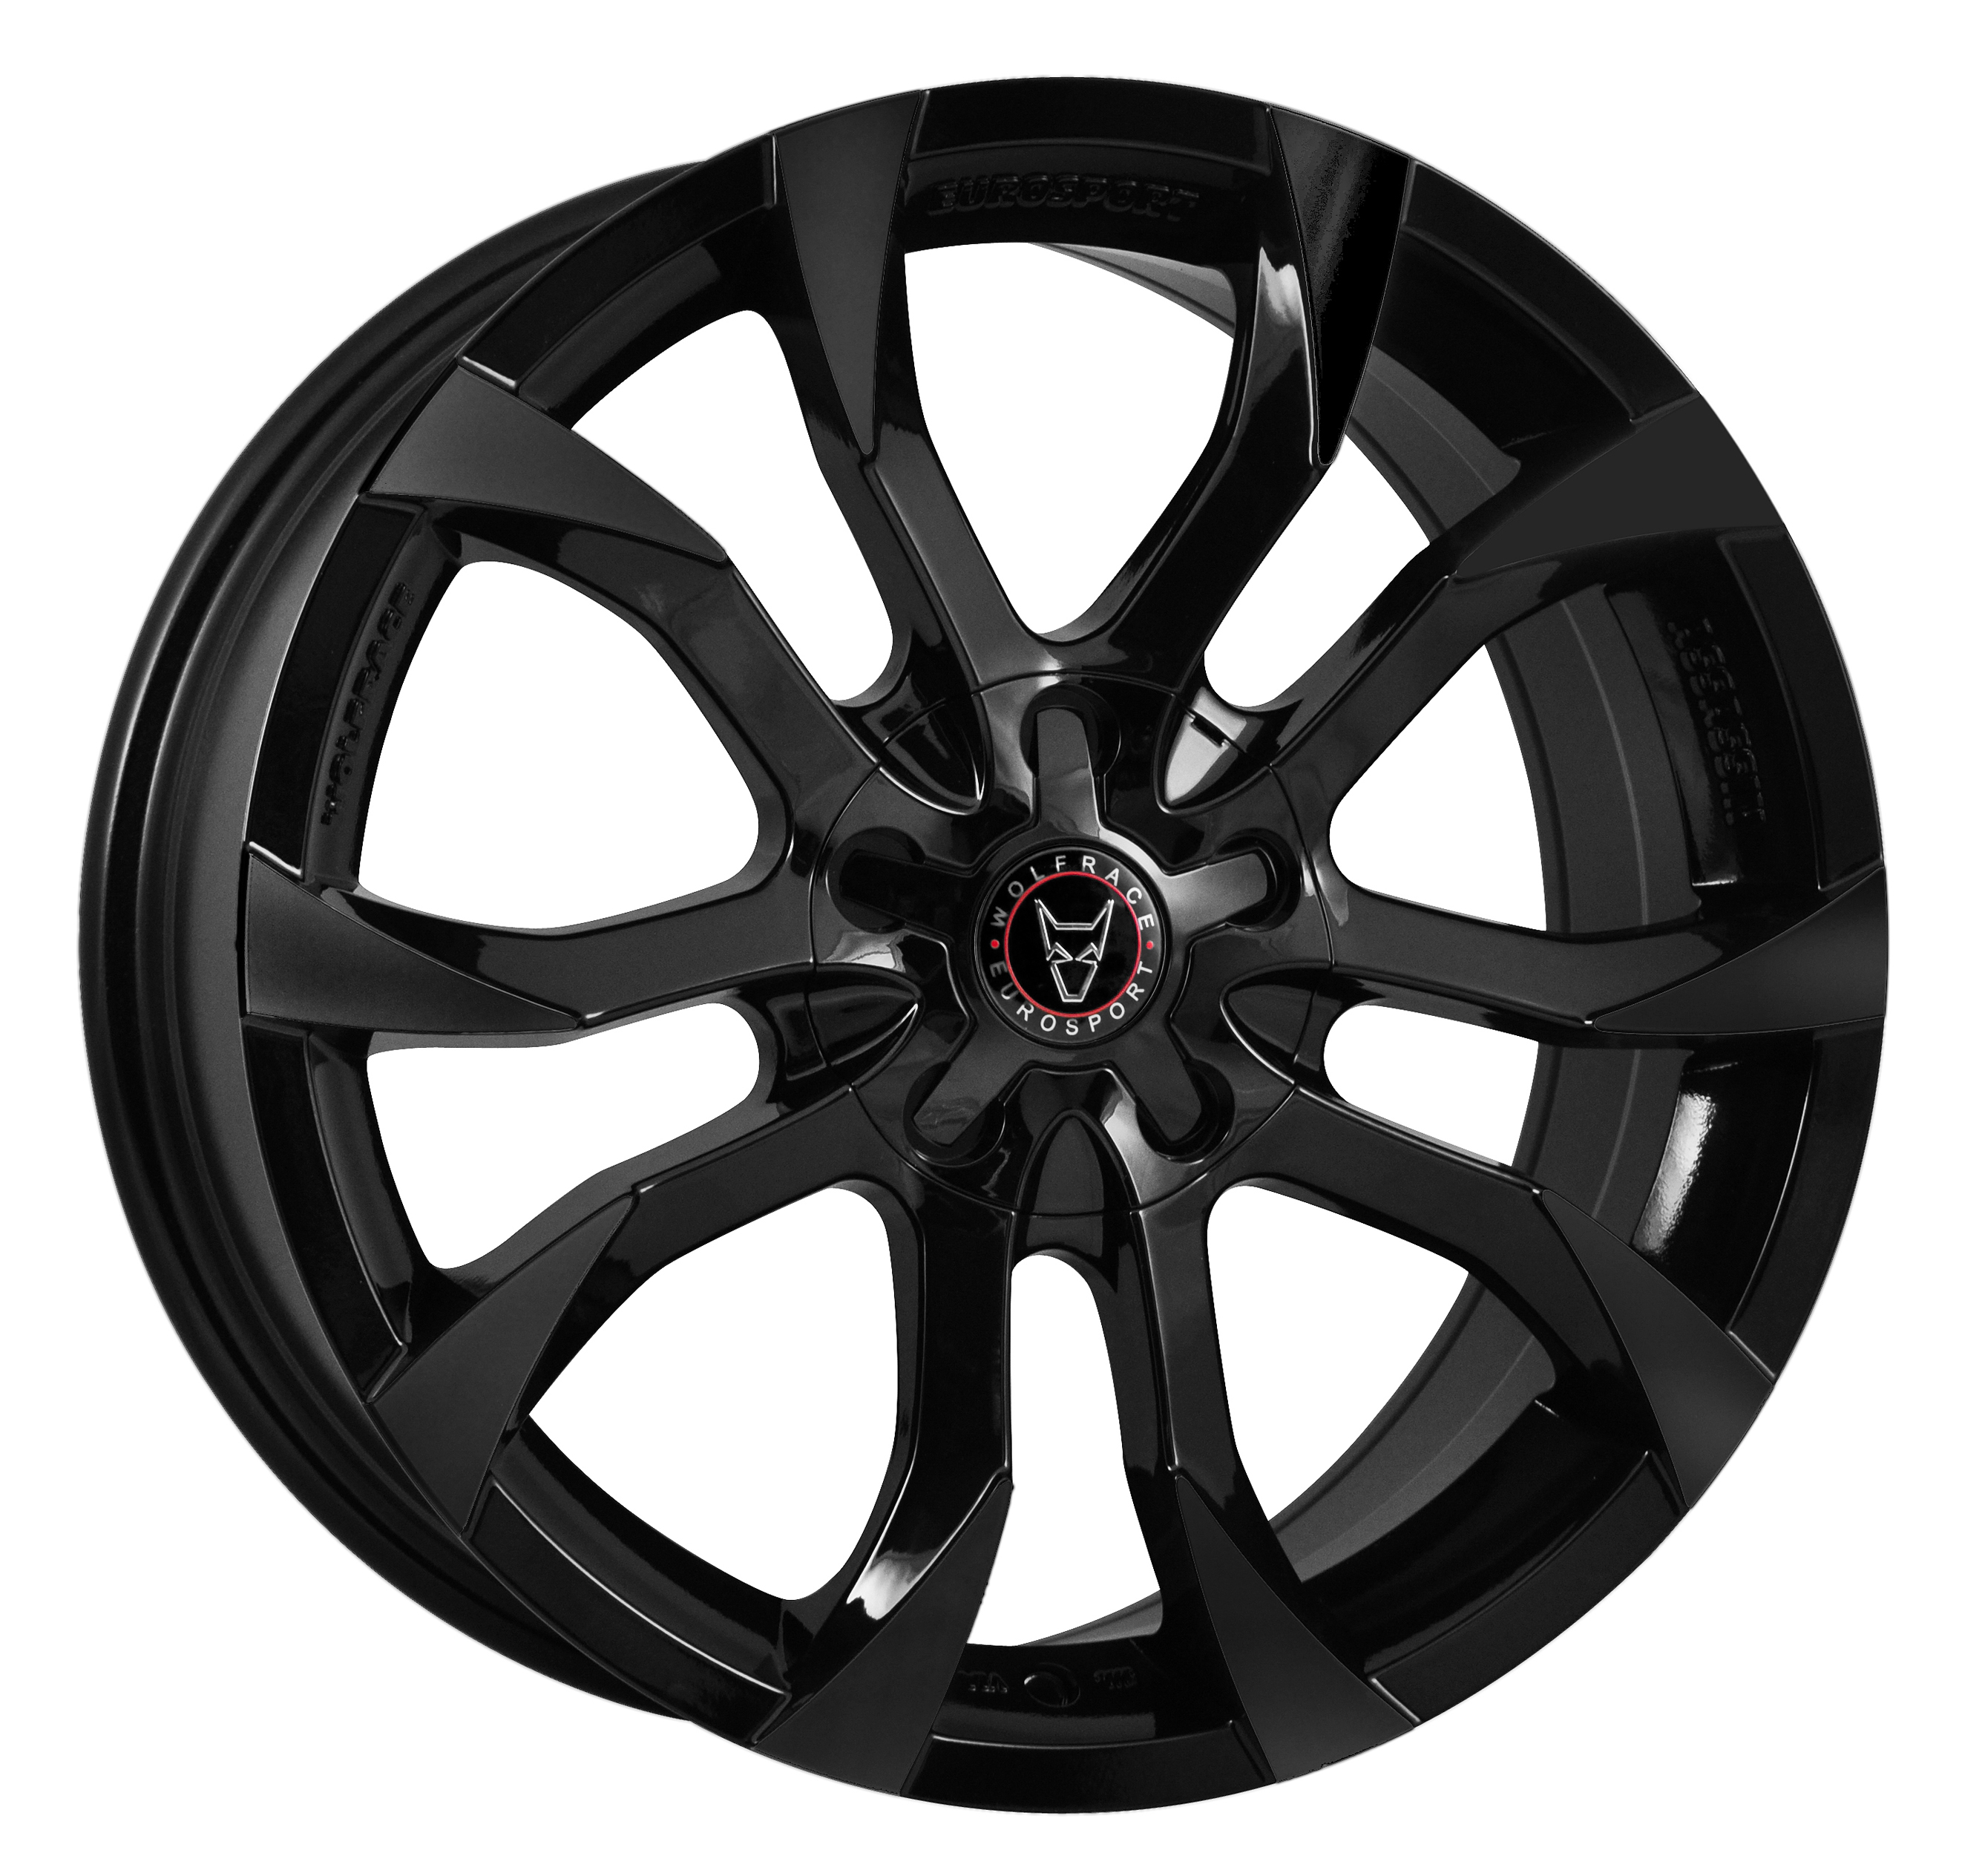 WOLFRACE EUROSPORT ASSASSIN 7x16 4x108 ET35 GLOSS BLACK